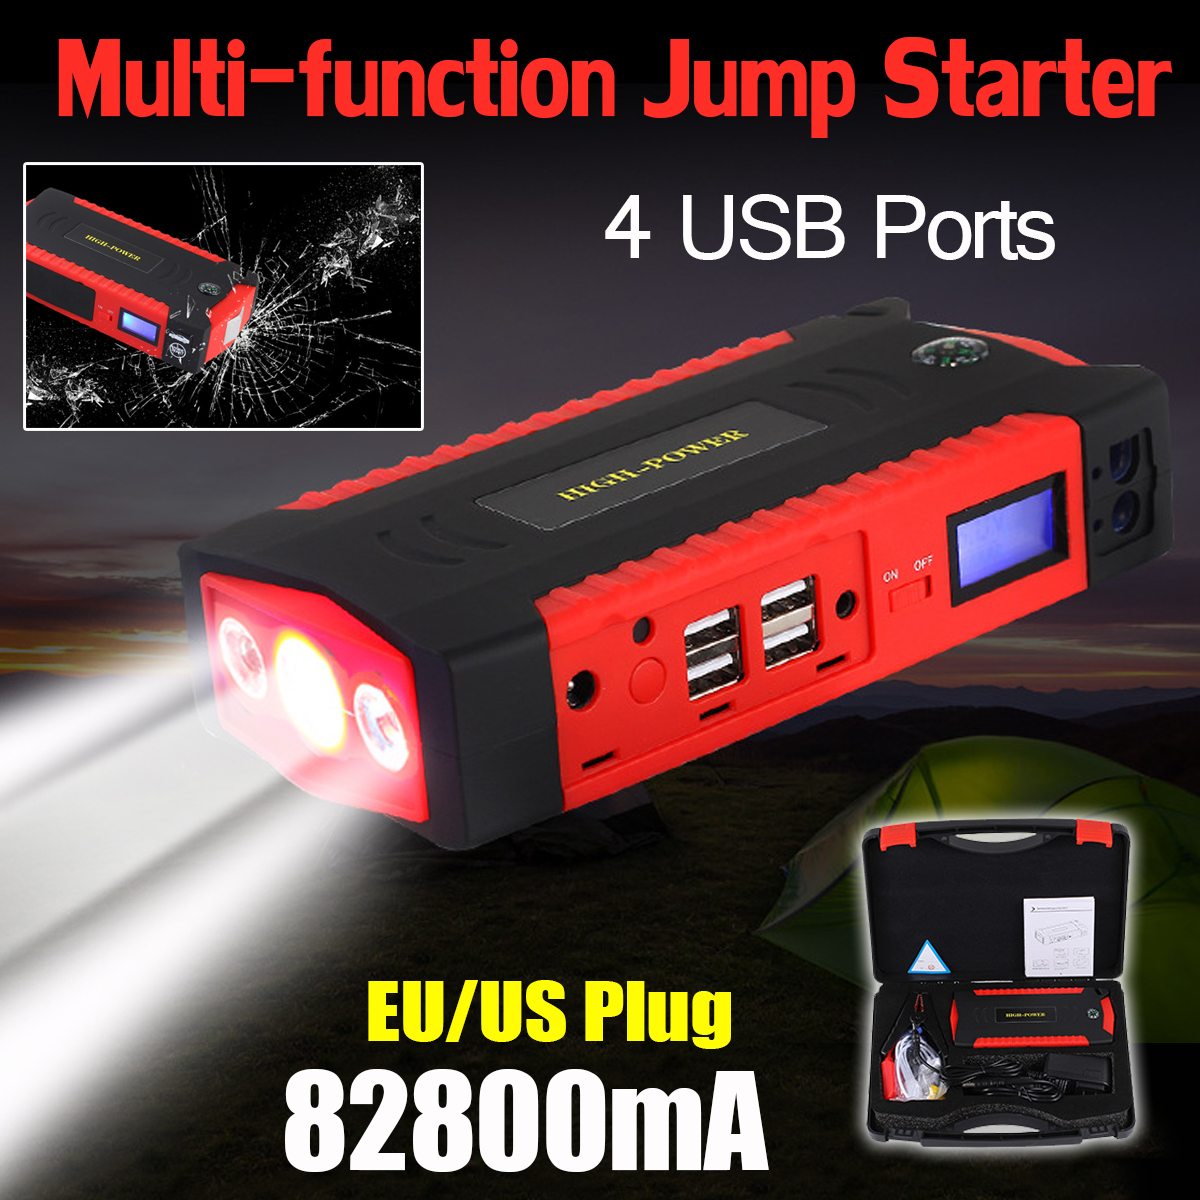 Portable 82800mAh 12V LCD 4USB Car Jump Starter Device Booster Charger Battery Power Bank LED Flashlight For Car Battery Charger practical 89800mah 12v 4usb car battery charger starting car jump starter booster power bank tool kit for auto starting device